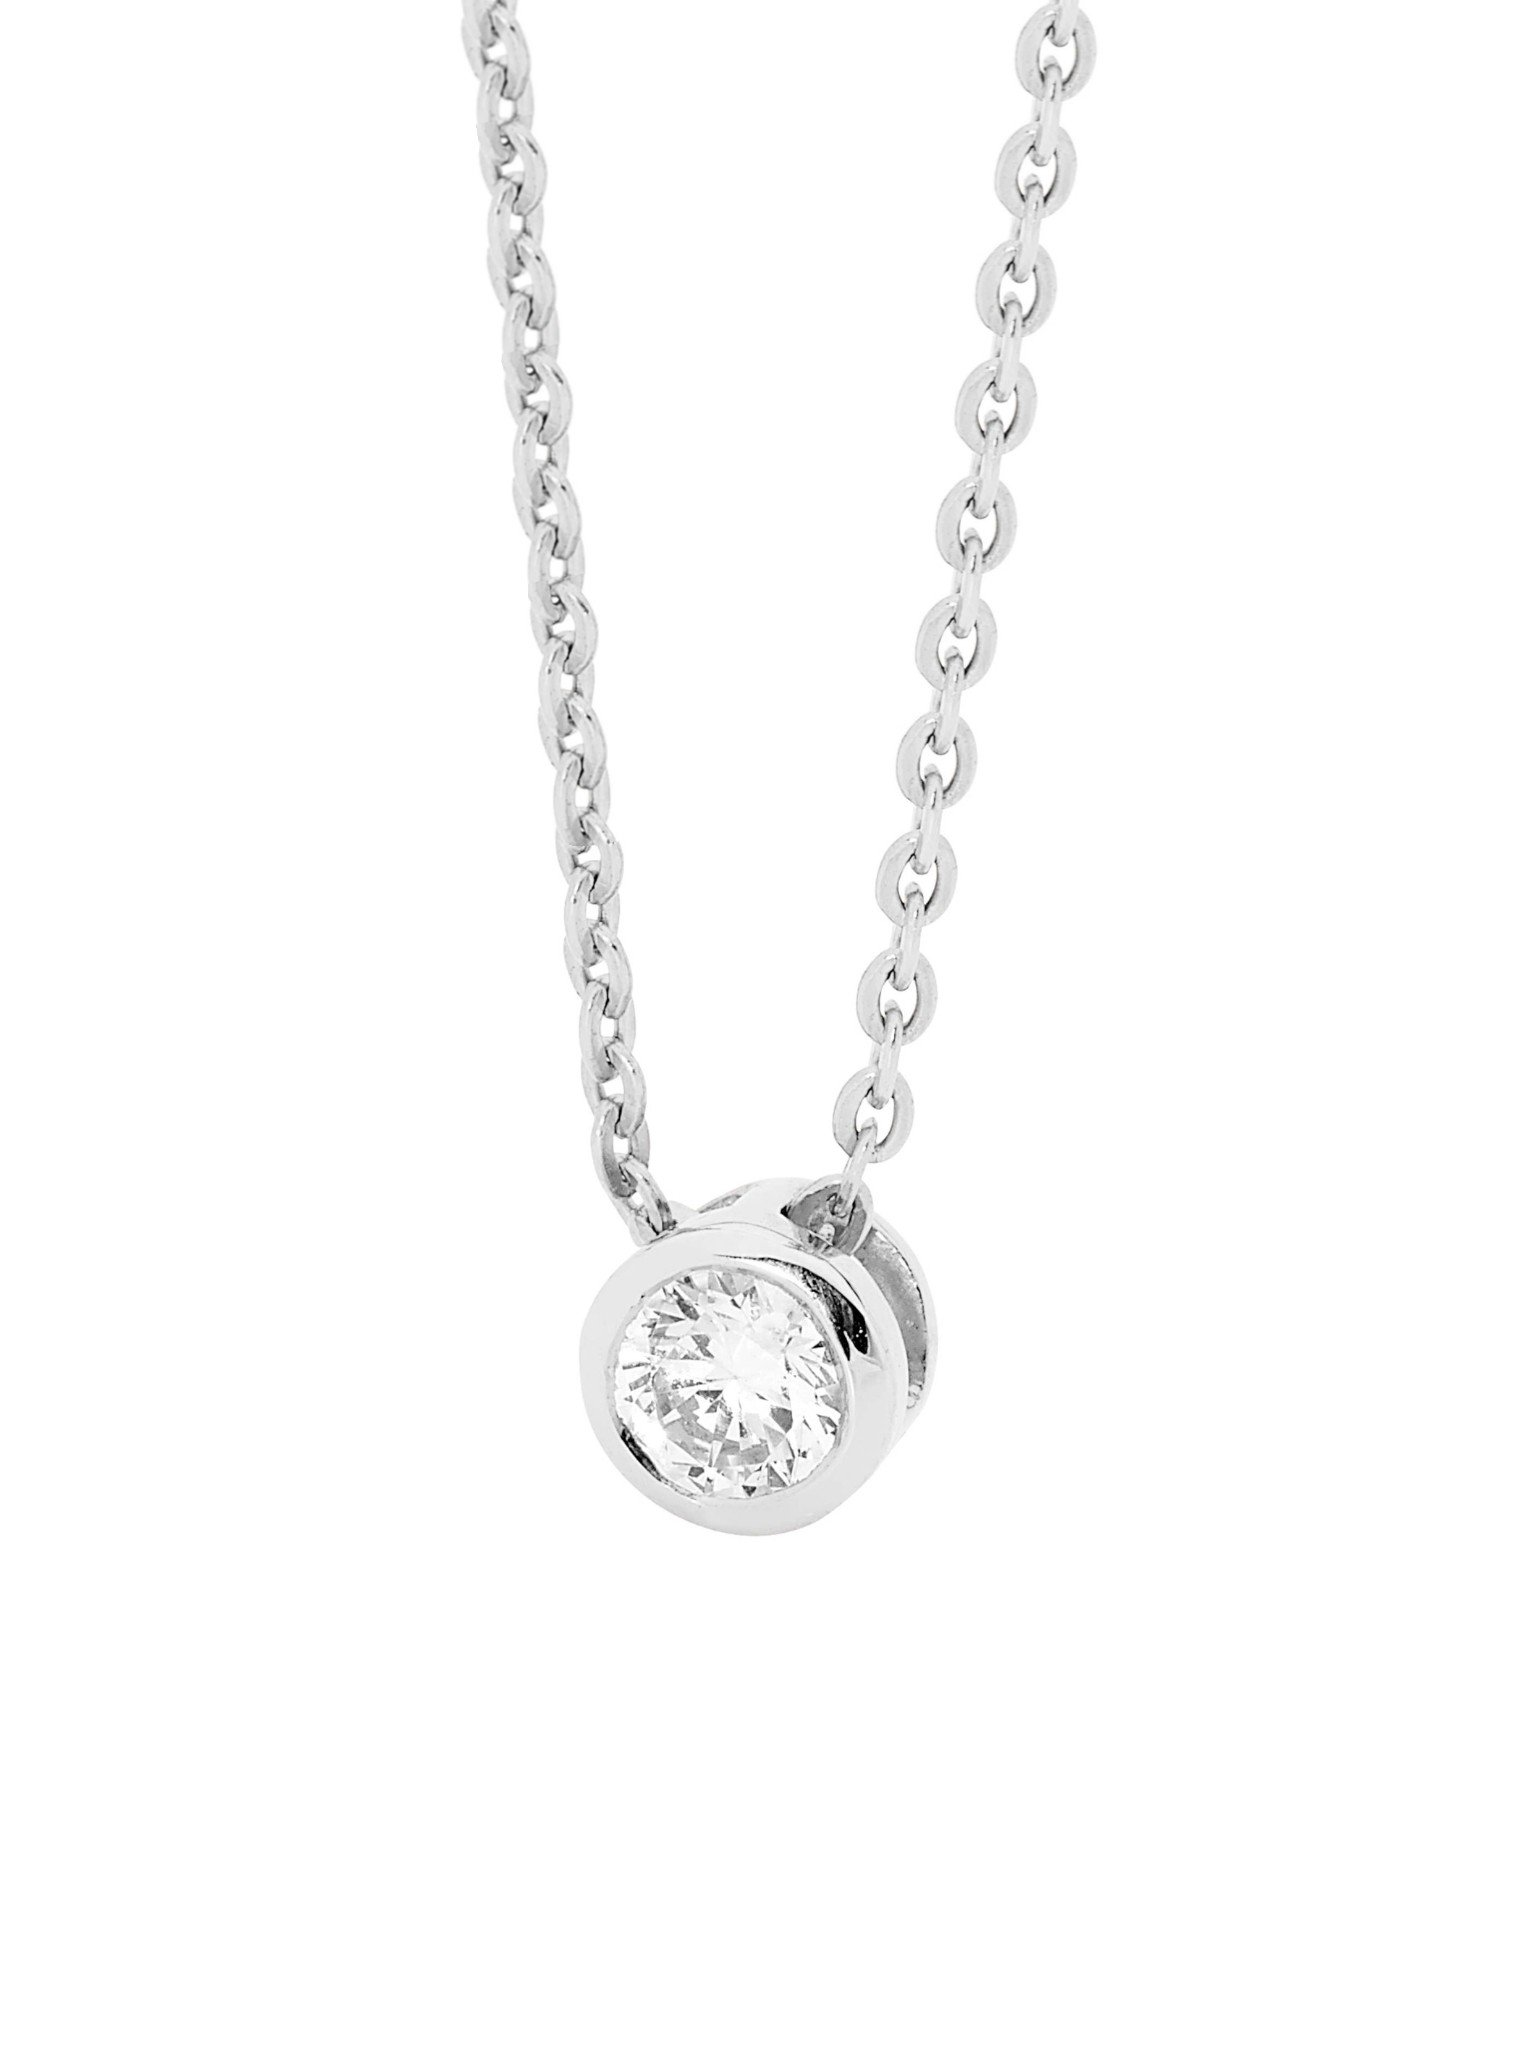 north simply necklace zoom zirconia star cubic sterling embellished necklaces pendant silver jewellery